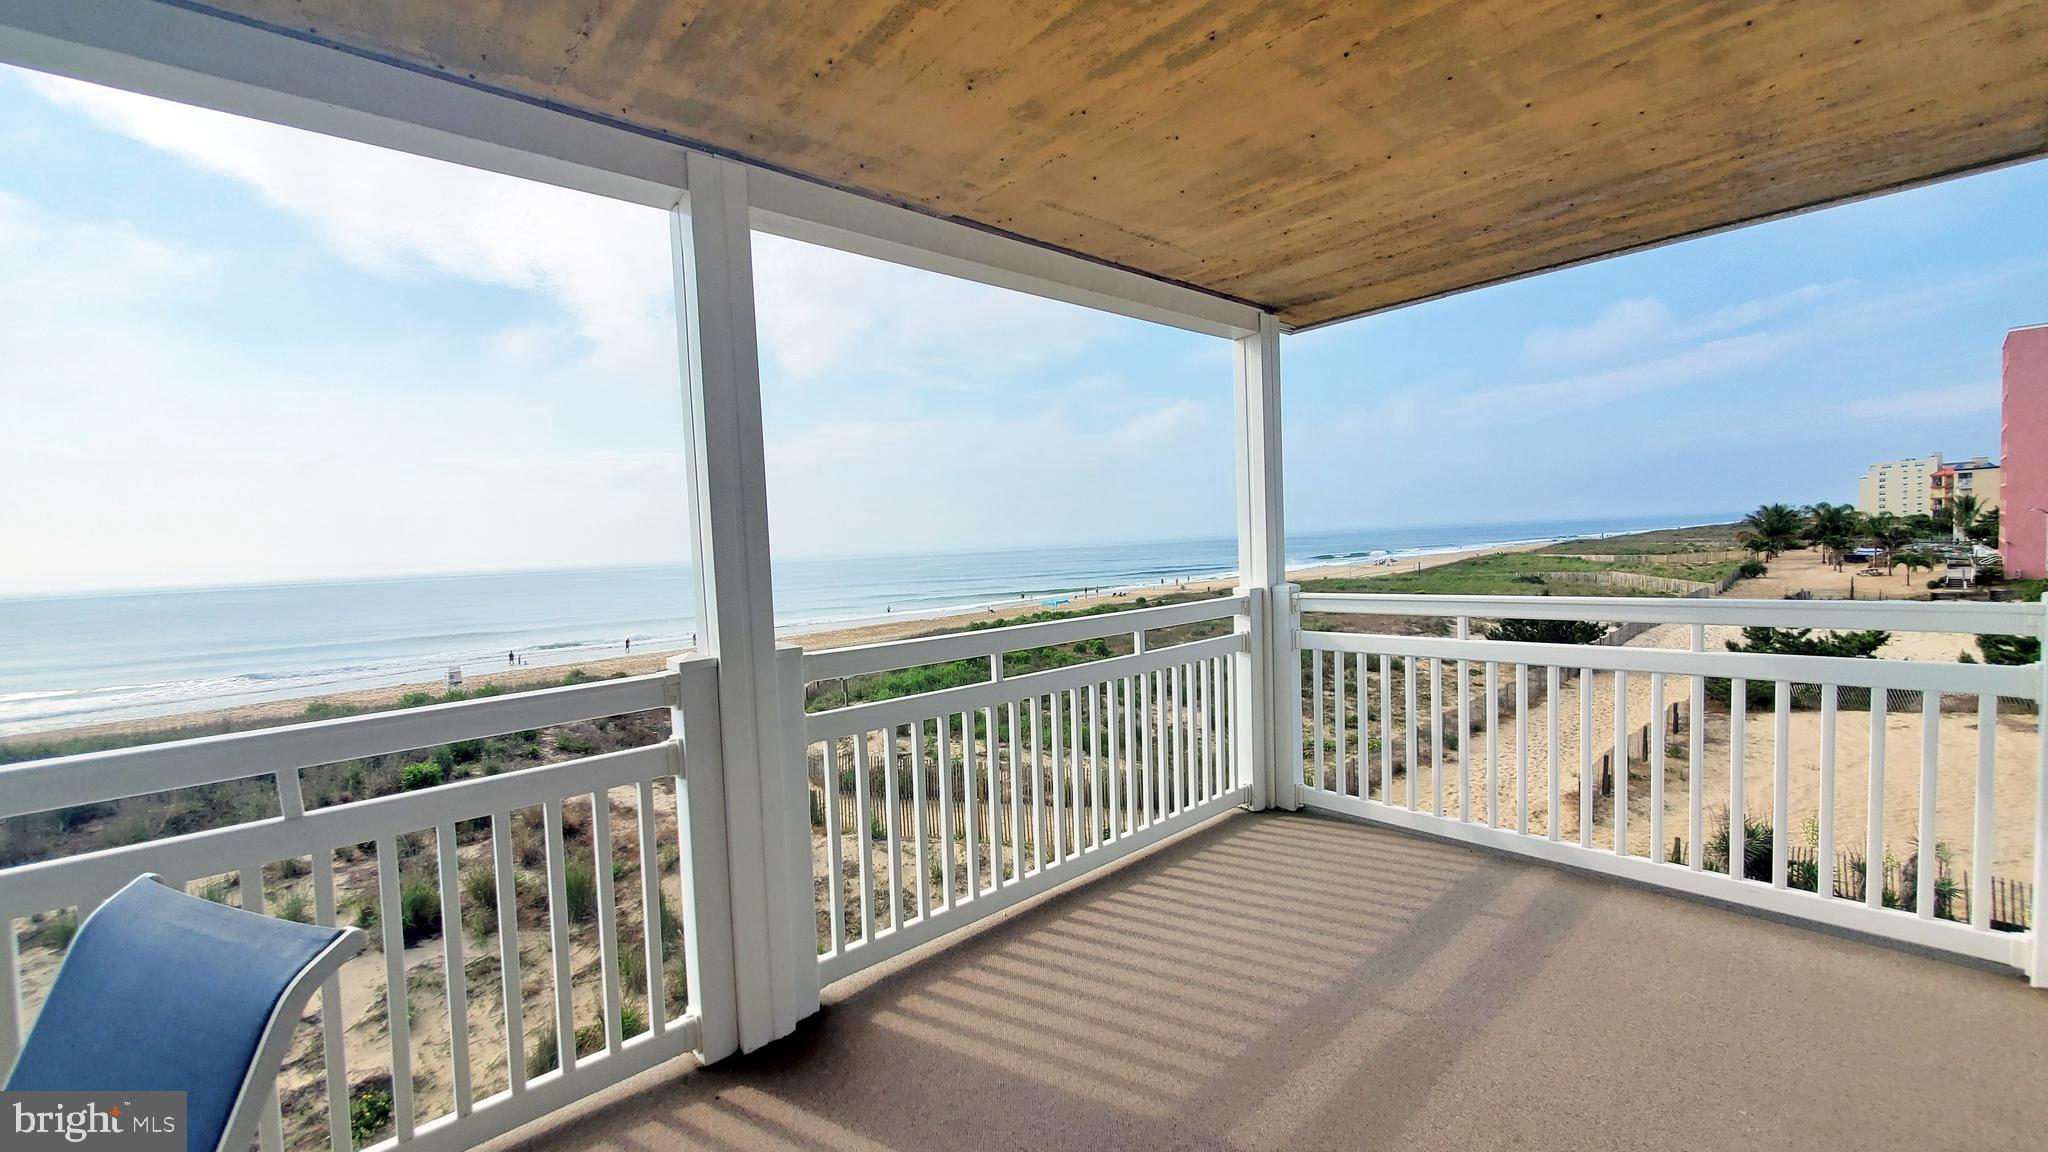 Direct oceanfront penthouse south corner condominium with 3 bedrooms 2 bathrooms.   Enjoy ocean breezes and sounds of the ocean all year long on the oversized deep deck.    Upon entrance of the property, you will notice that it has been well cared for with updated kitchen, laminate flooring, tile, updated bathrooms, new baseboard heat, new built-in microwave, newer window units (5 Years), ceiling fans and more.   The complex has been well maintained with a new roof 12 years ago, new railings and currently having all new vinyl siding installed.  If you are looking for a 3-bedroom oceanfront in a small building under 600 with easy access to the beach this one is for you.